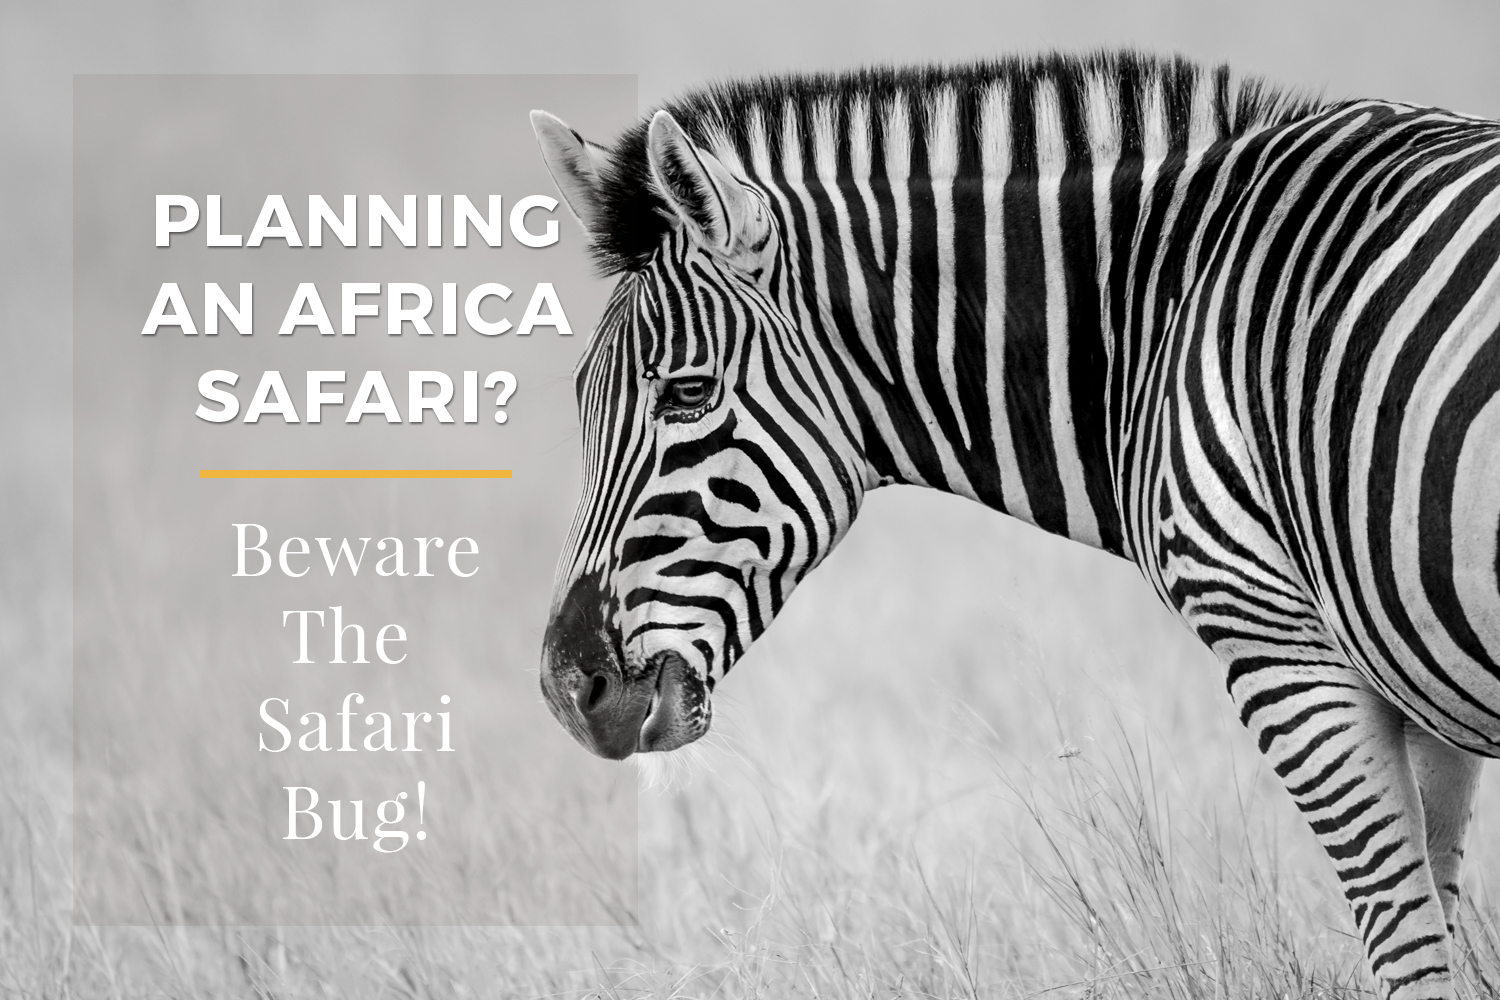 Andrew Sproule Photography | Planning An Africa Safari? | Beware the Safari Bug!